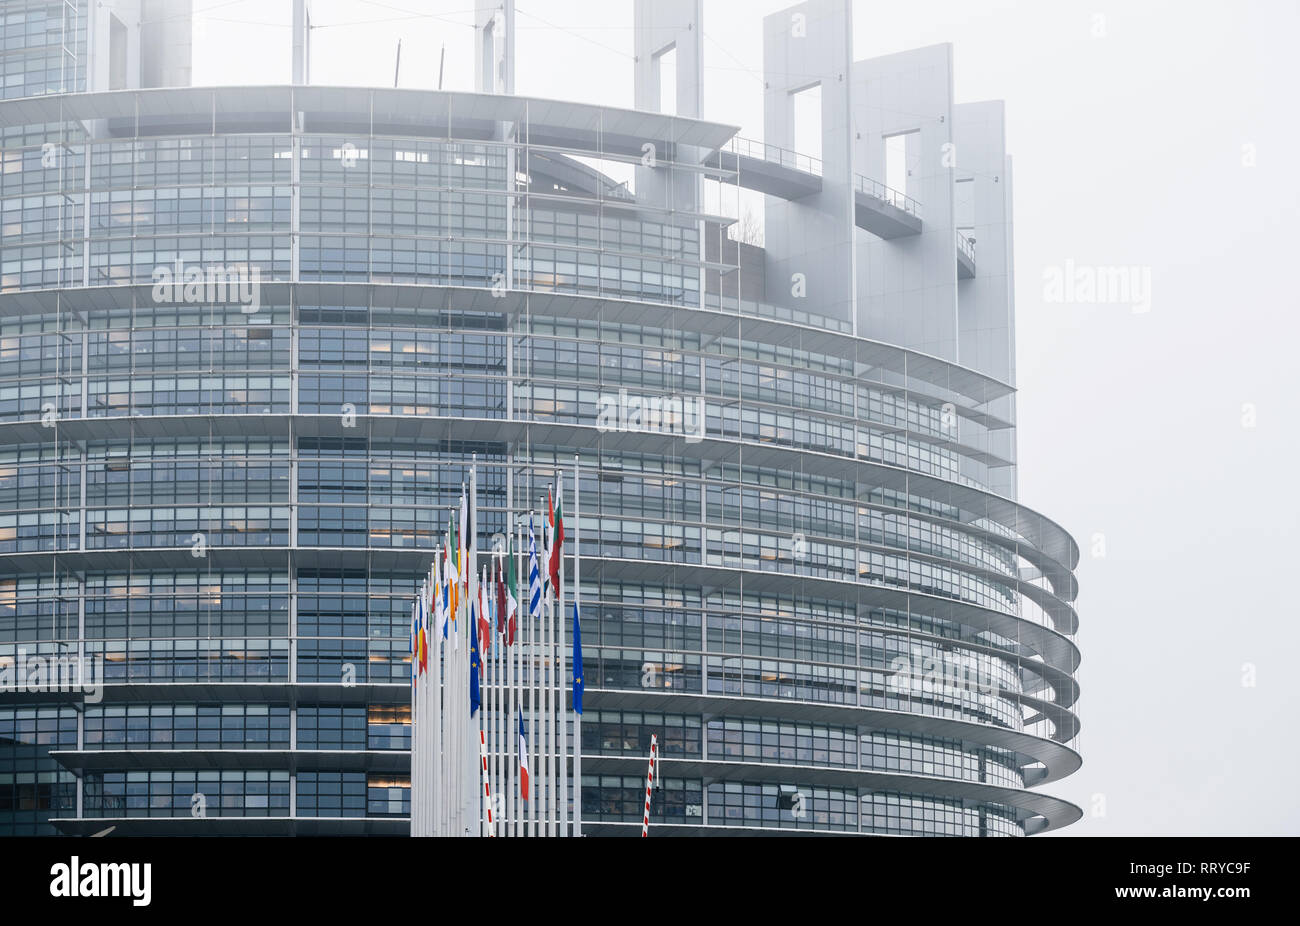 STRASBOURG, FRANCE - DEC 11, 2018: European Union and French Flags flies at half-mast in front of the European Parliament following an attack in center of Strasbourg during annual Christmas Market - Stock Image